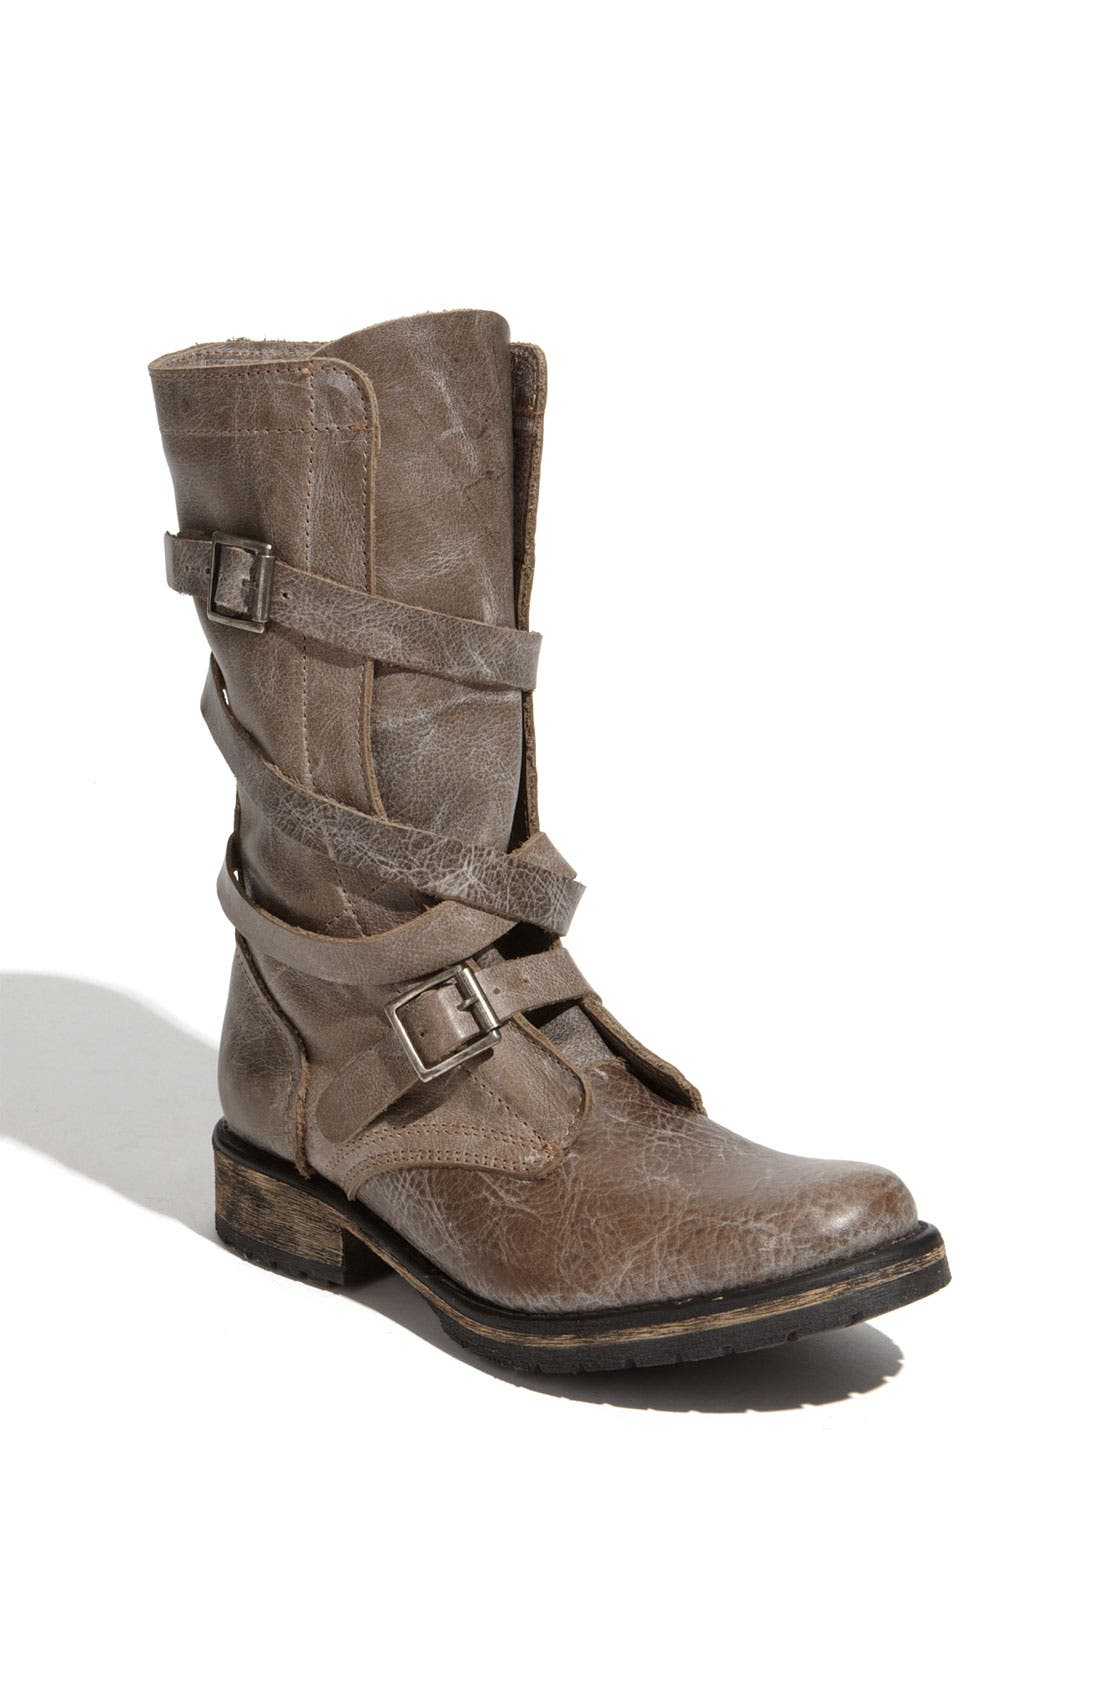 Main Image - Steve Madden 'Banddit Buckle' Boot